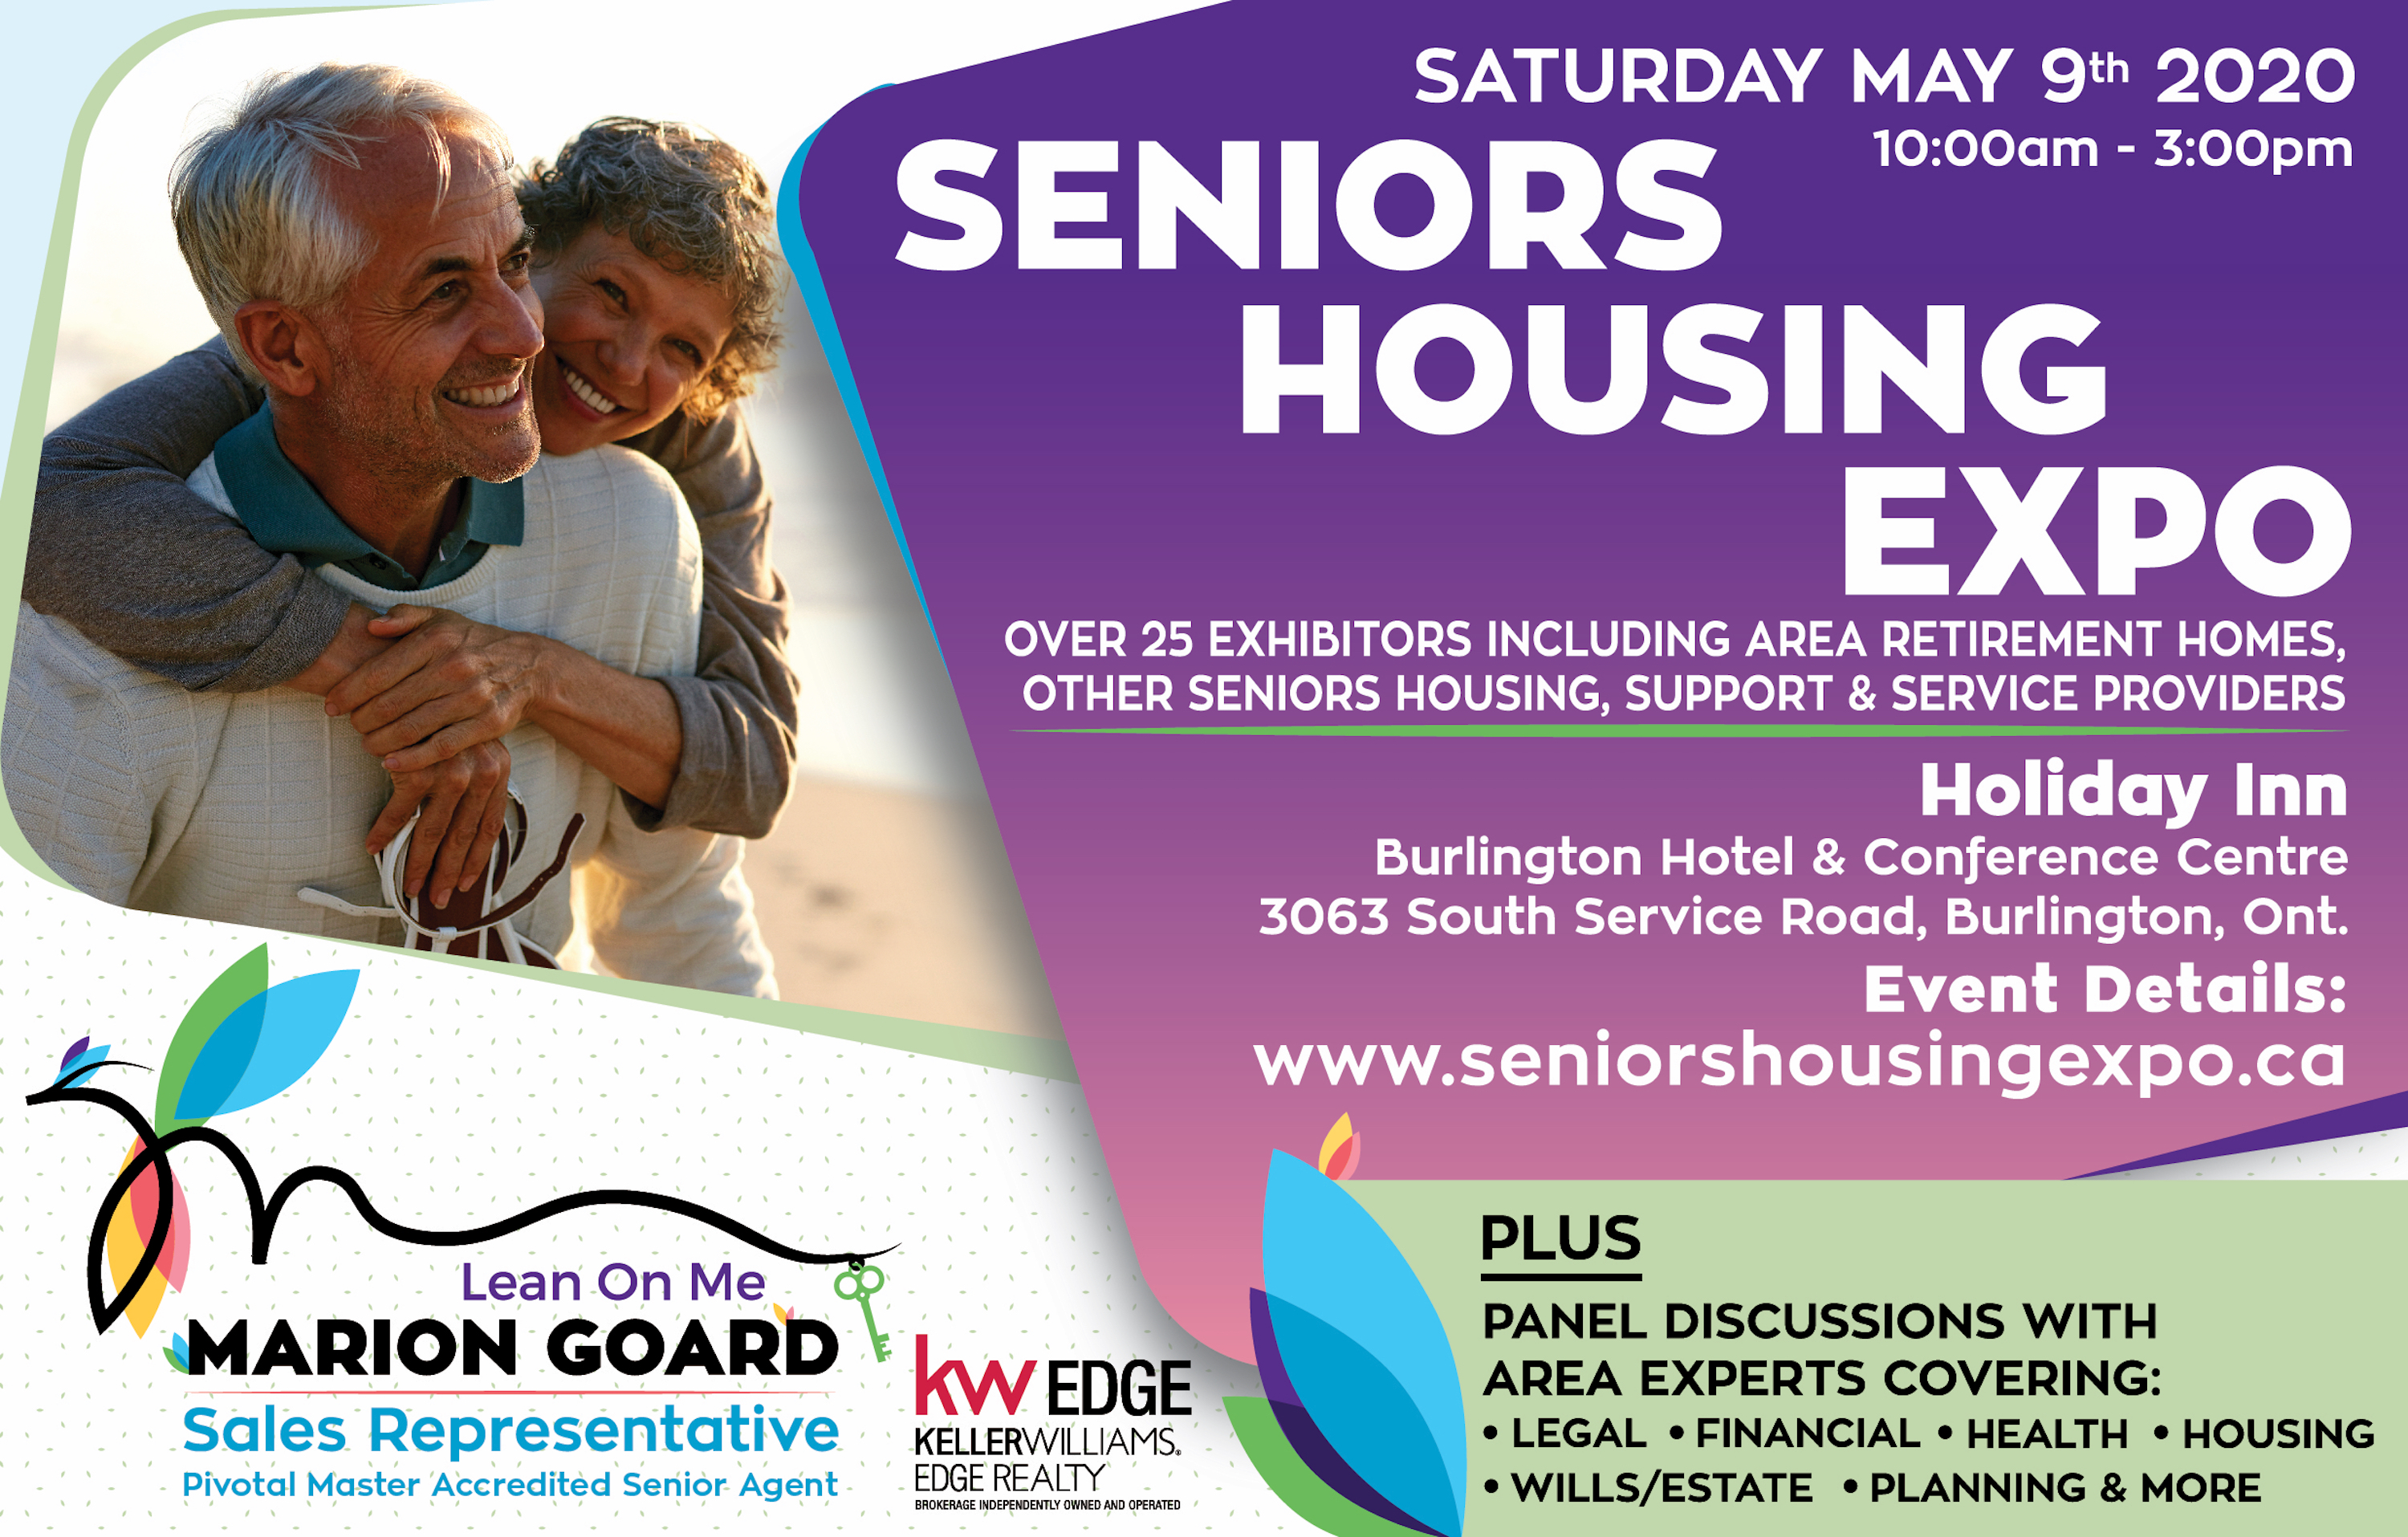 Marion Goard Senior Event - May 9th 2020